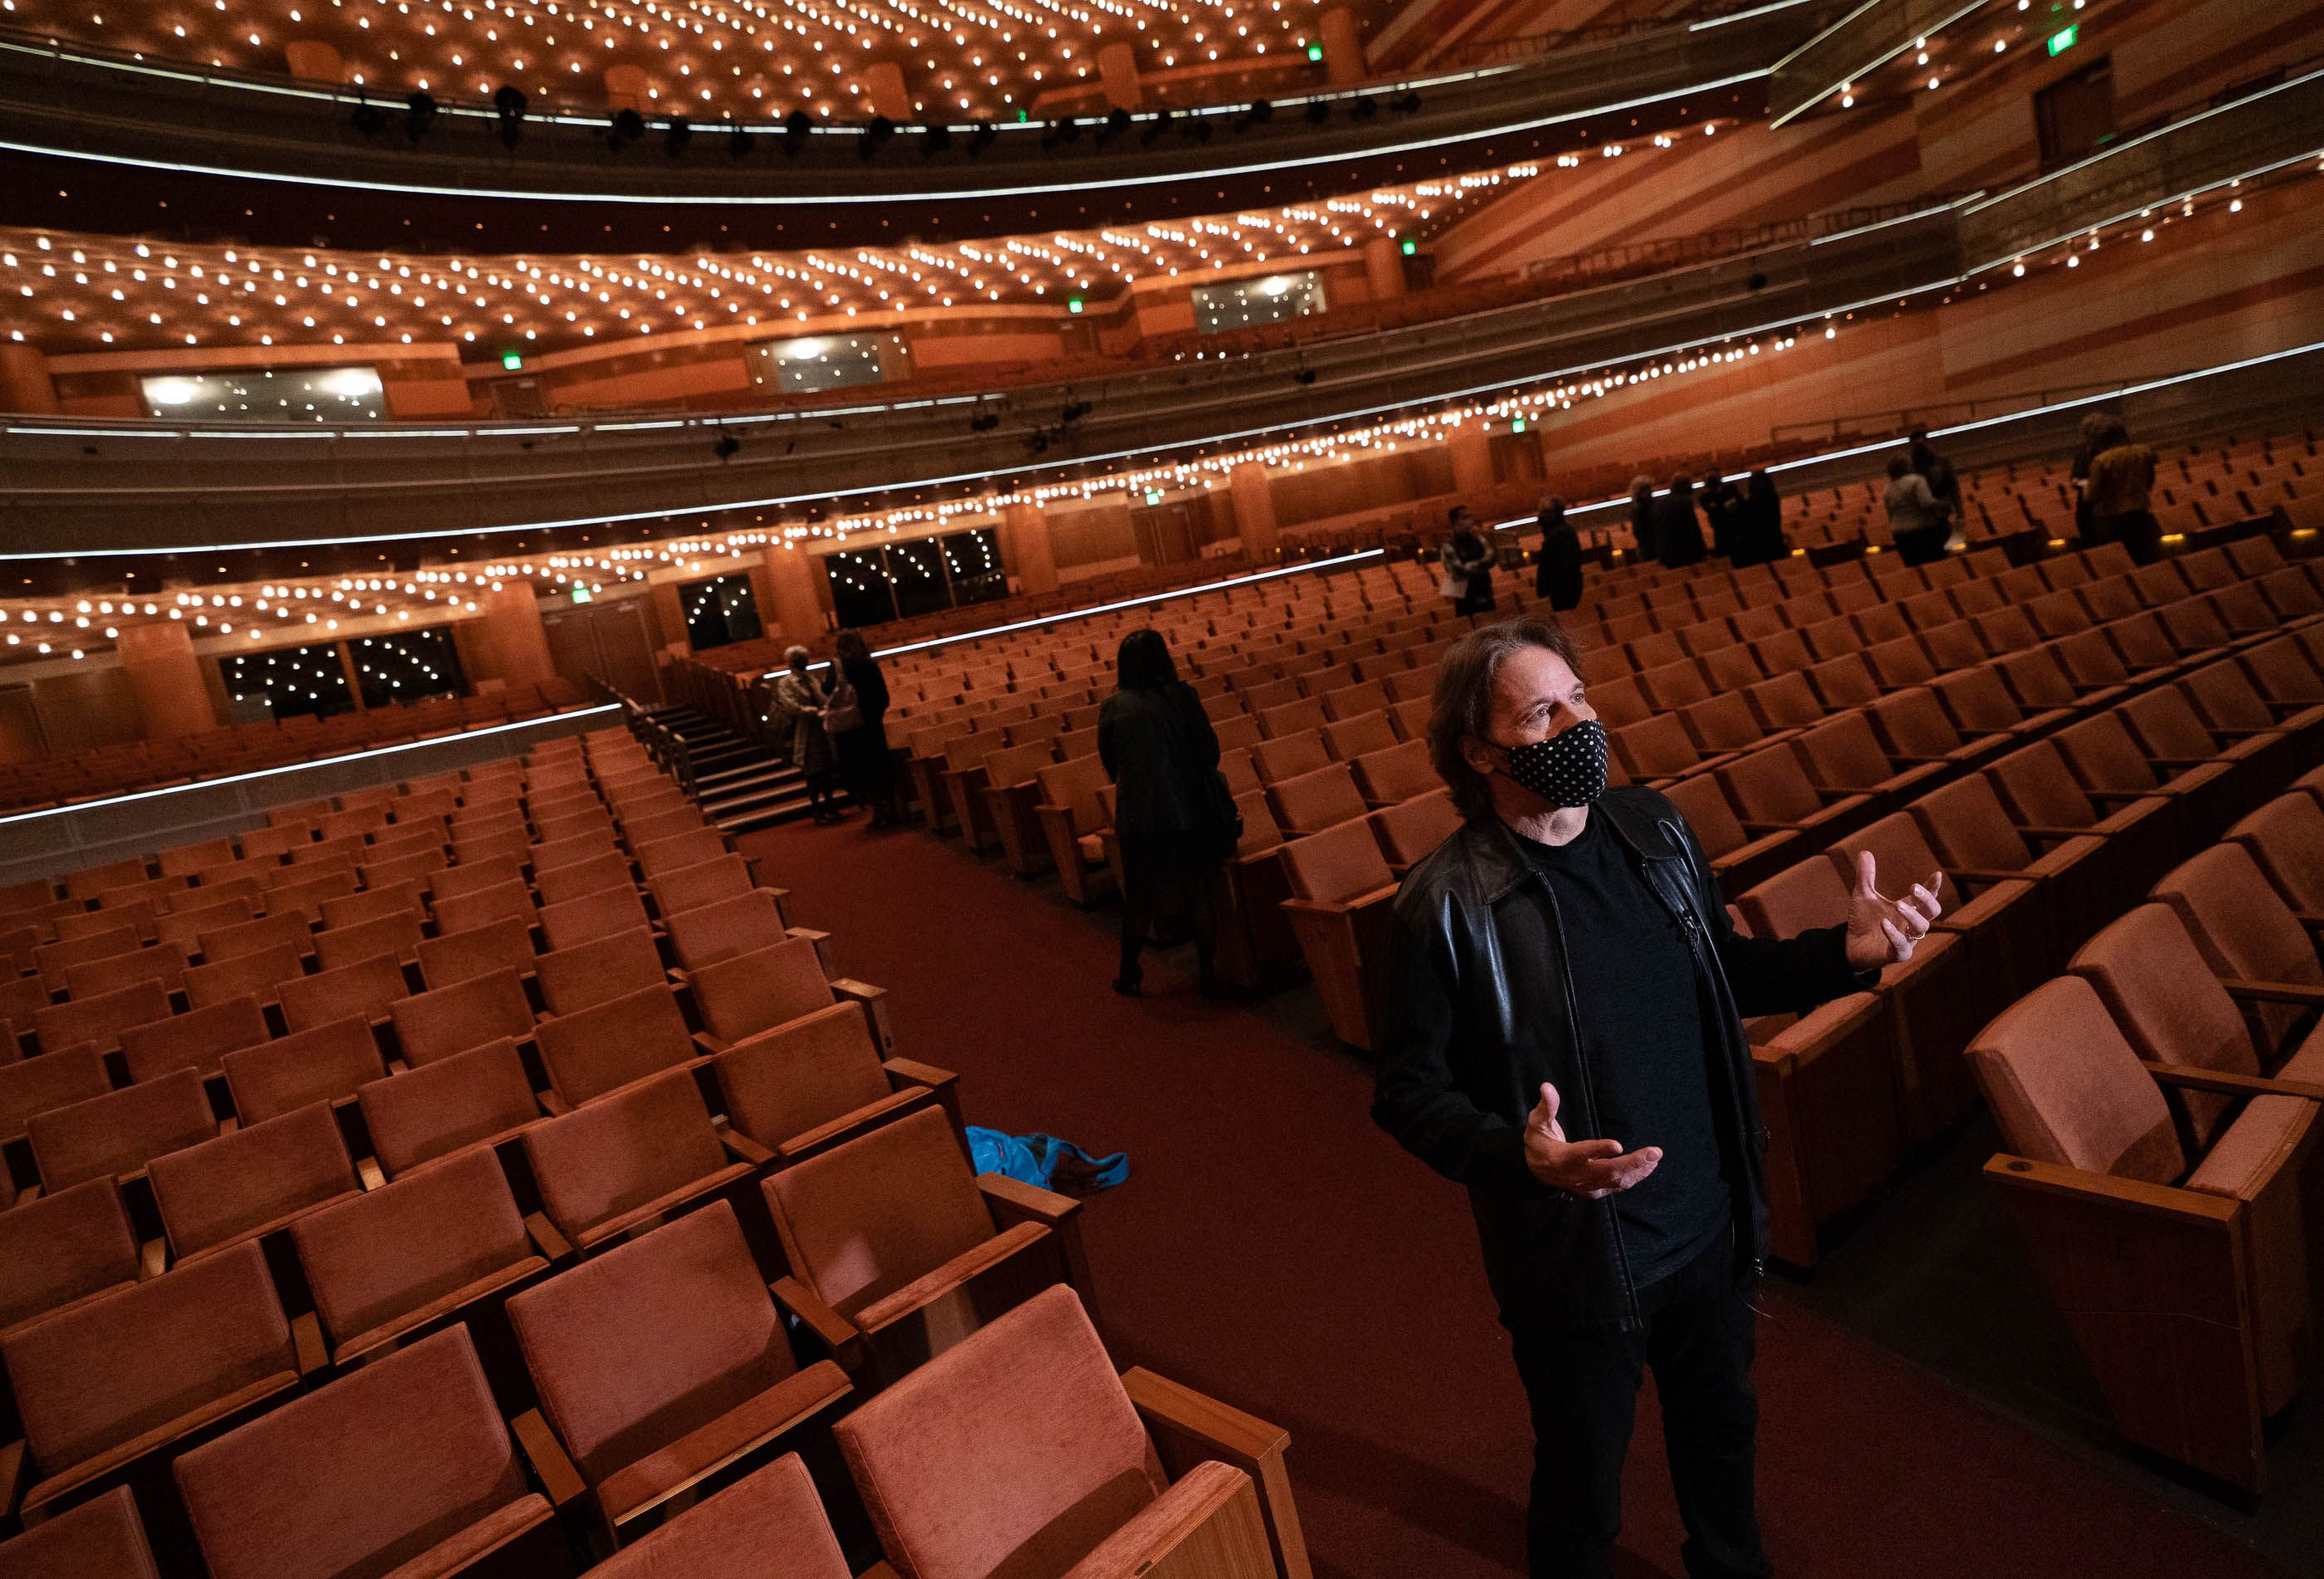 (Francisco Kjolseth  | The Salt Lake Tribune) Emmy Award-winning Utah composer Kurt Bestor talks about the upcoming season as the Eccles Theater announces the venue's first shows since the COVID-19 pandemic began, during a press event on Wednesday, March 24, 2021.